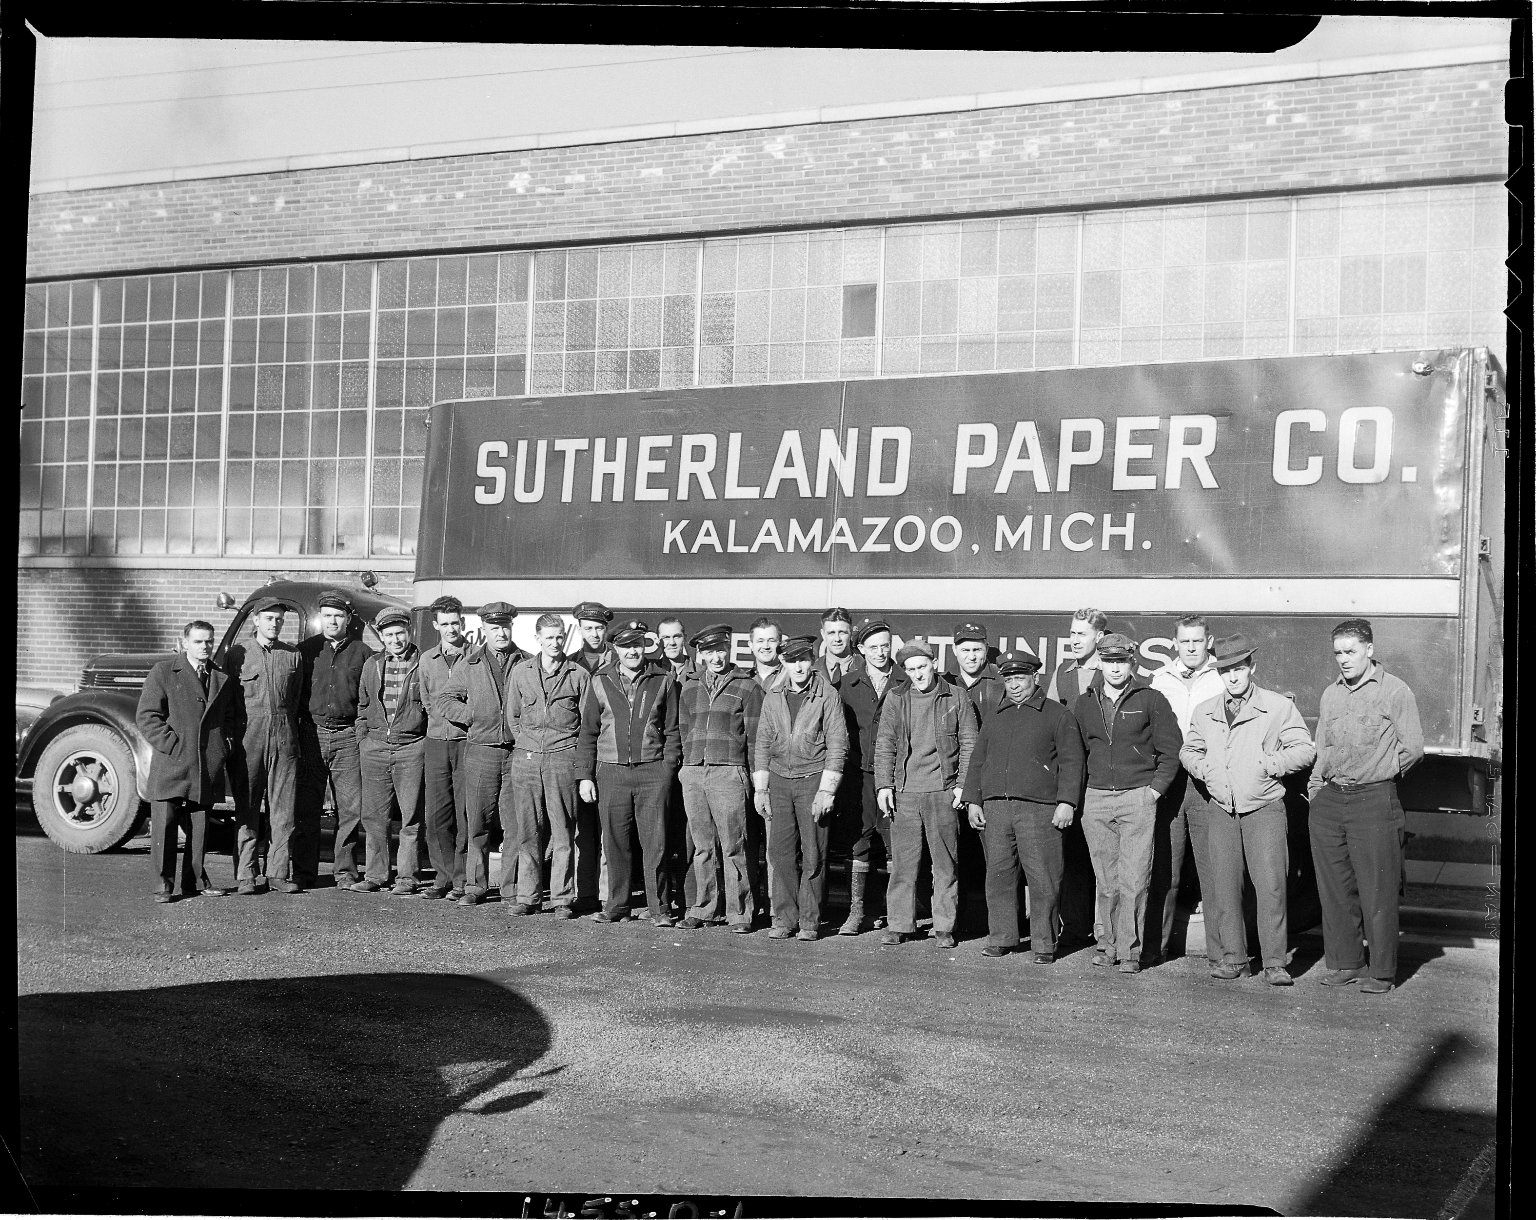 Sutherland Paper Company truck and truck drivers